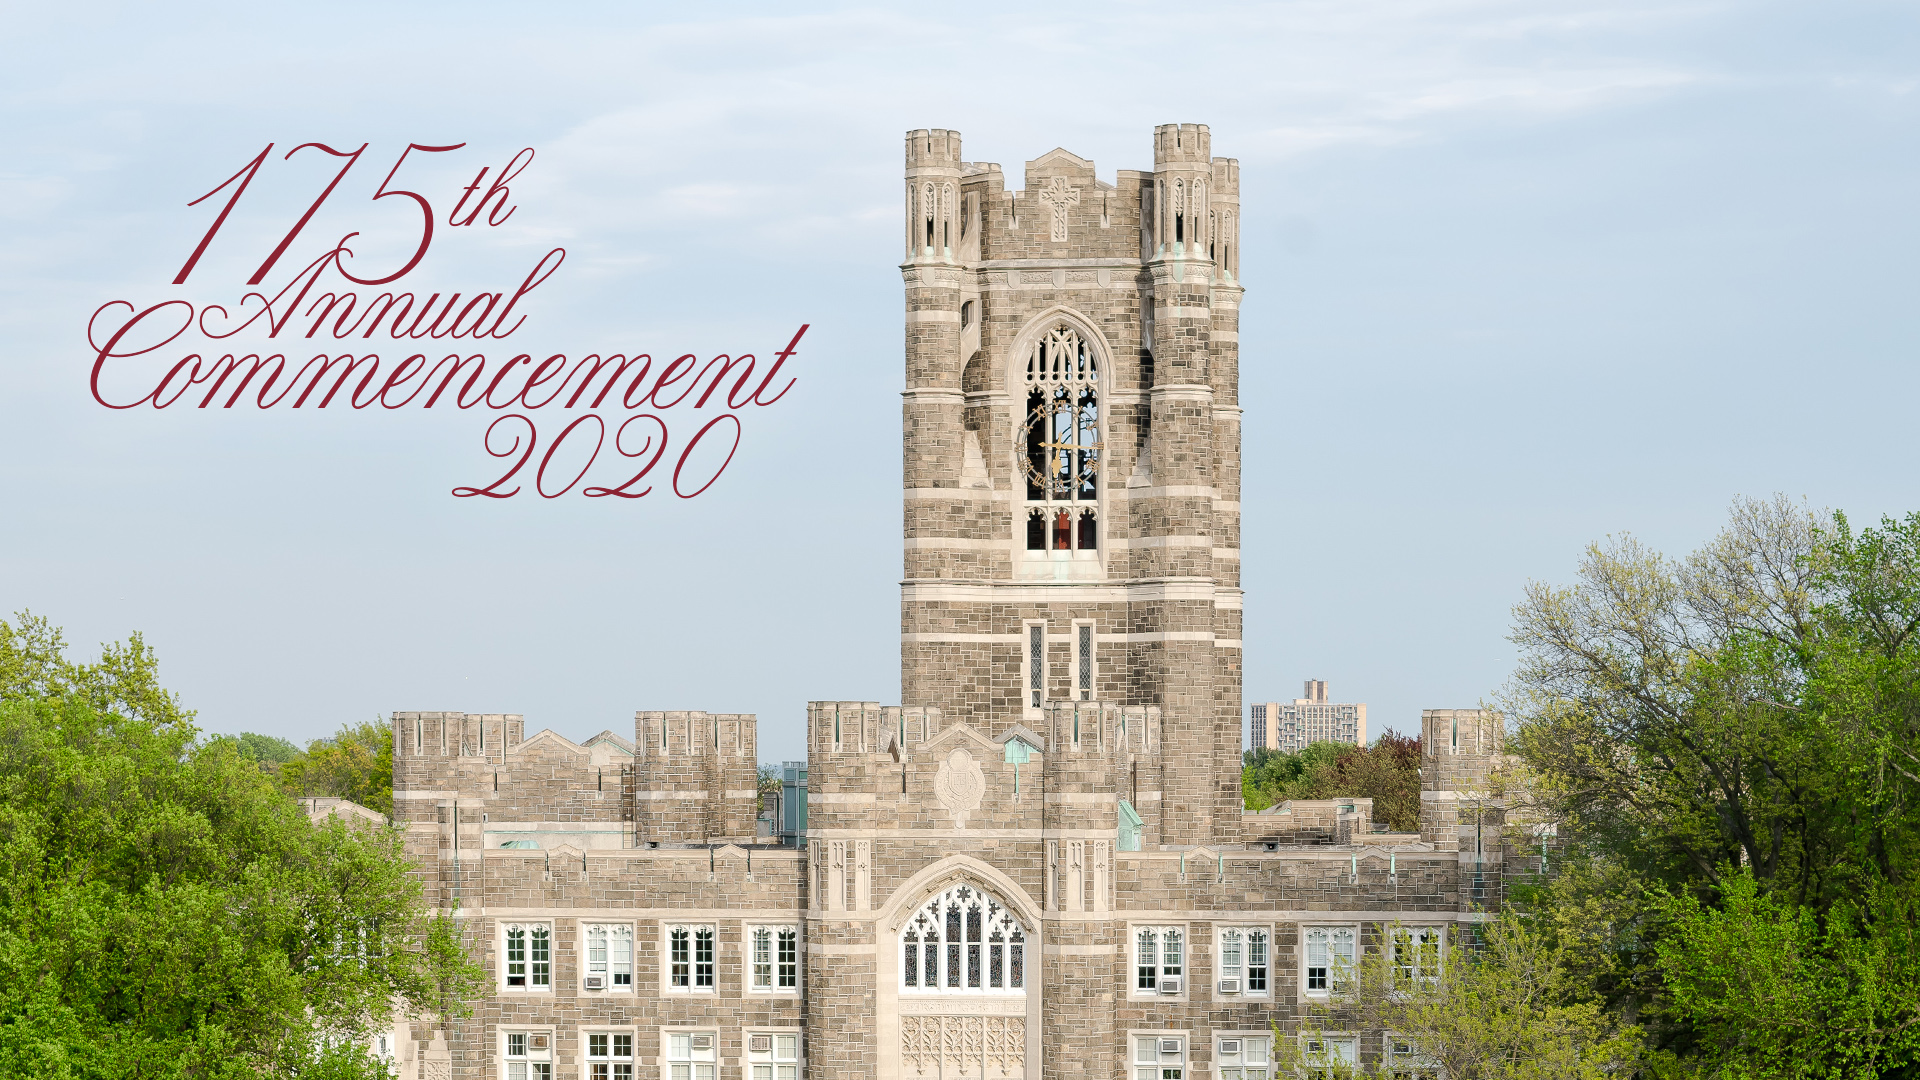 175th Commencement Horizontal Zoom Background with Keating Hall